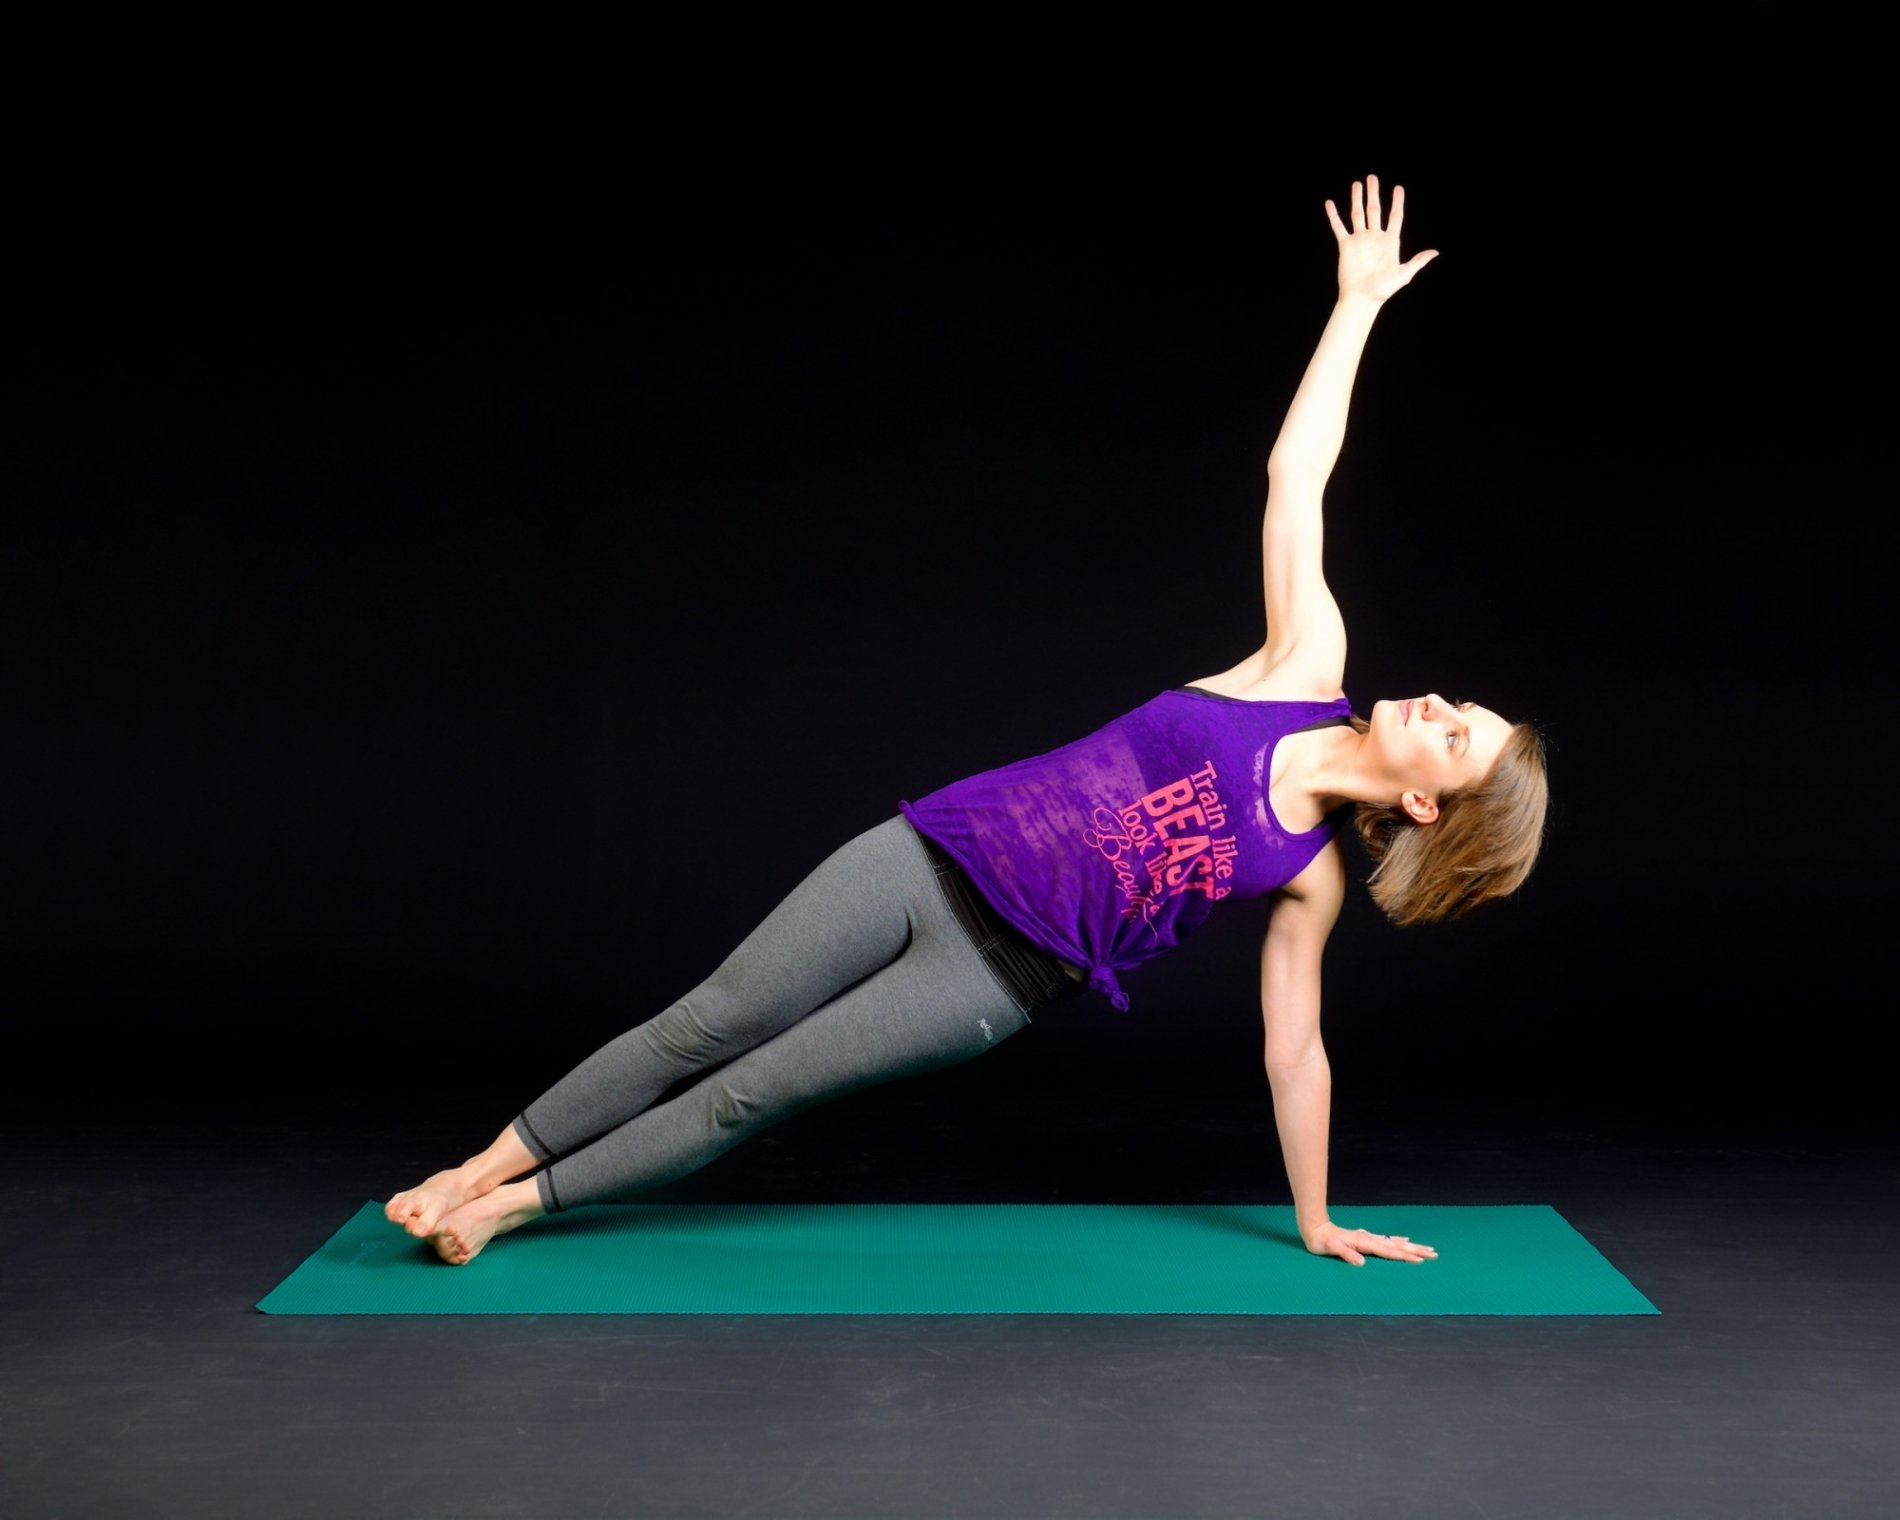 The Best Toning Exercises to Do While Practicing Social Distancing